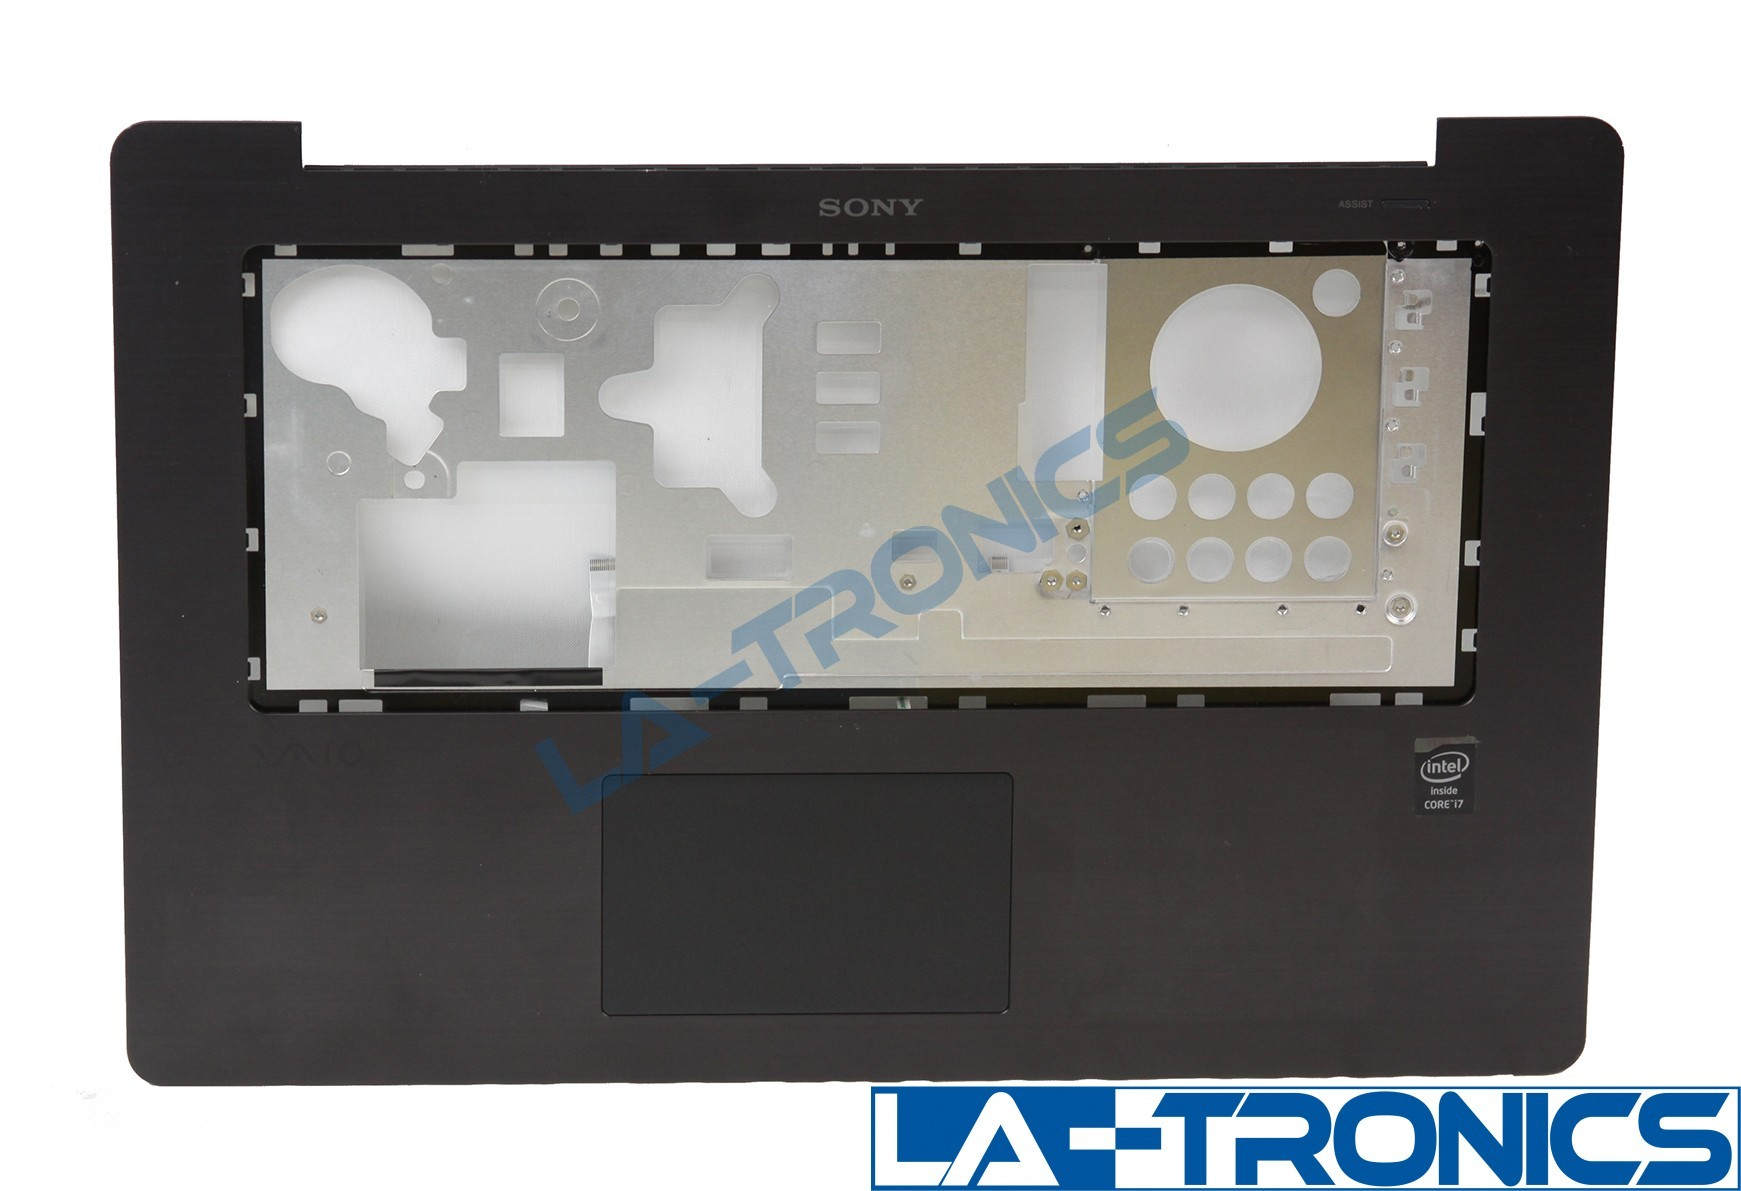 Sony Vaio SVF15 Palmrest, Touchpad, 3GFI3TAN090 Tested, Grade A-